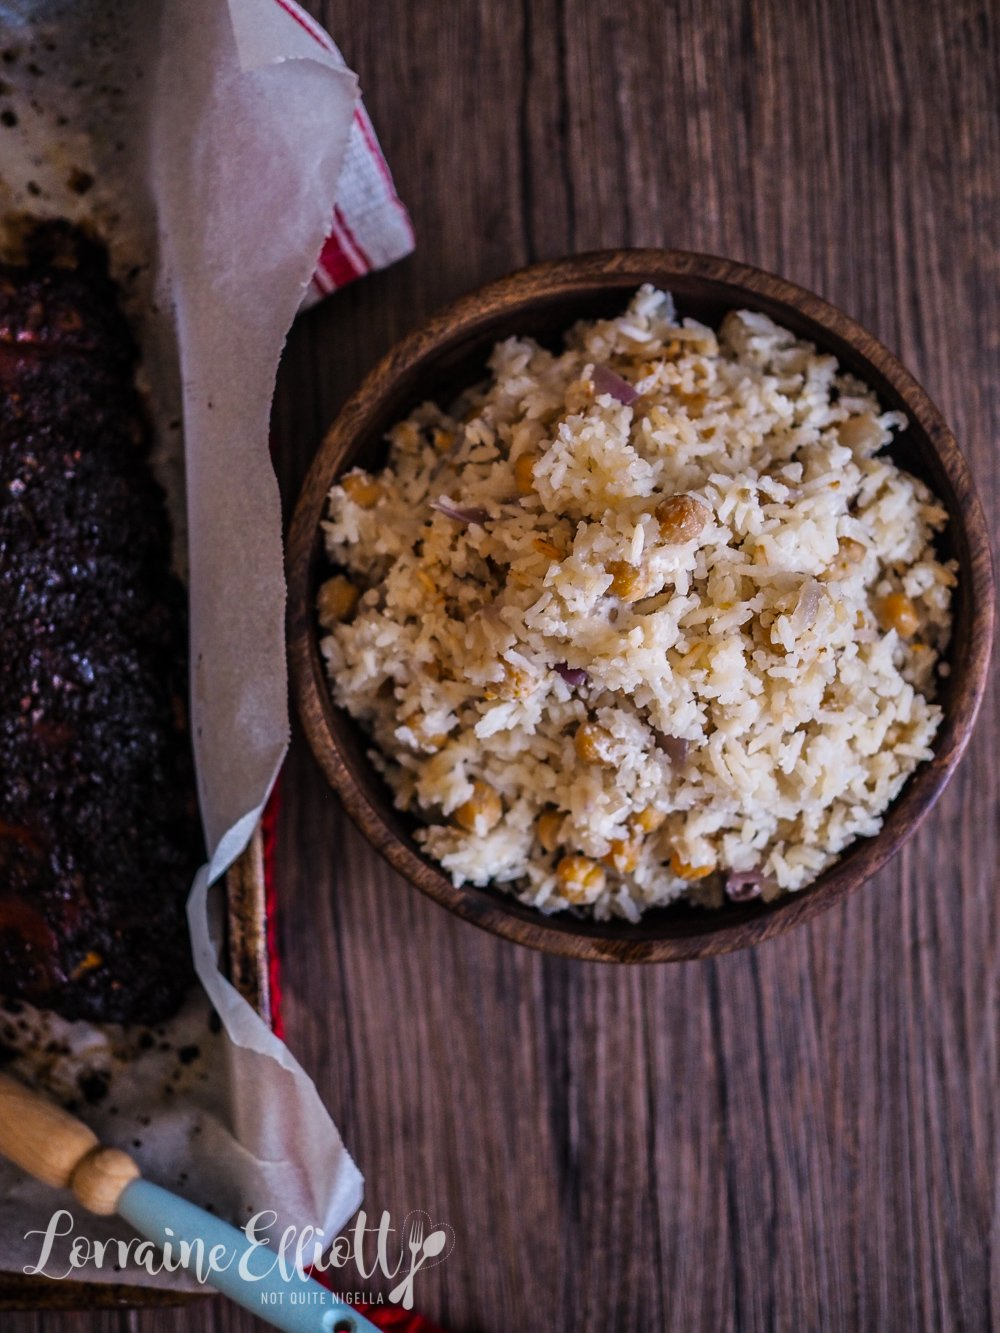 Jamaican Jerk Pork Ribs & Coconut Rice